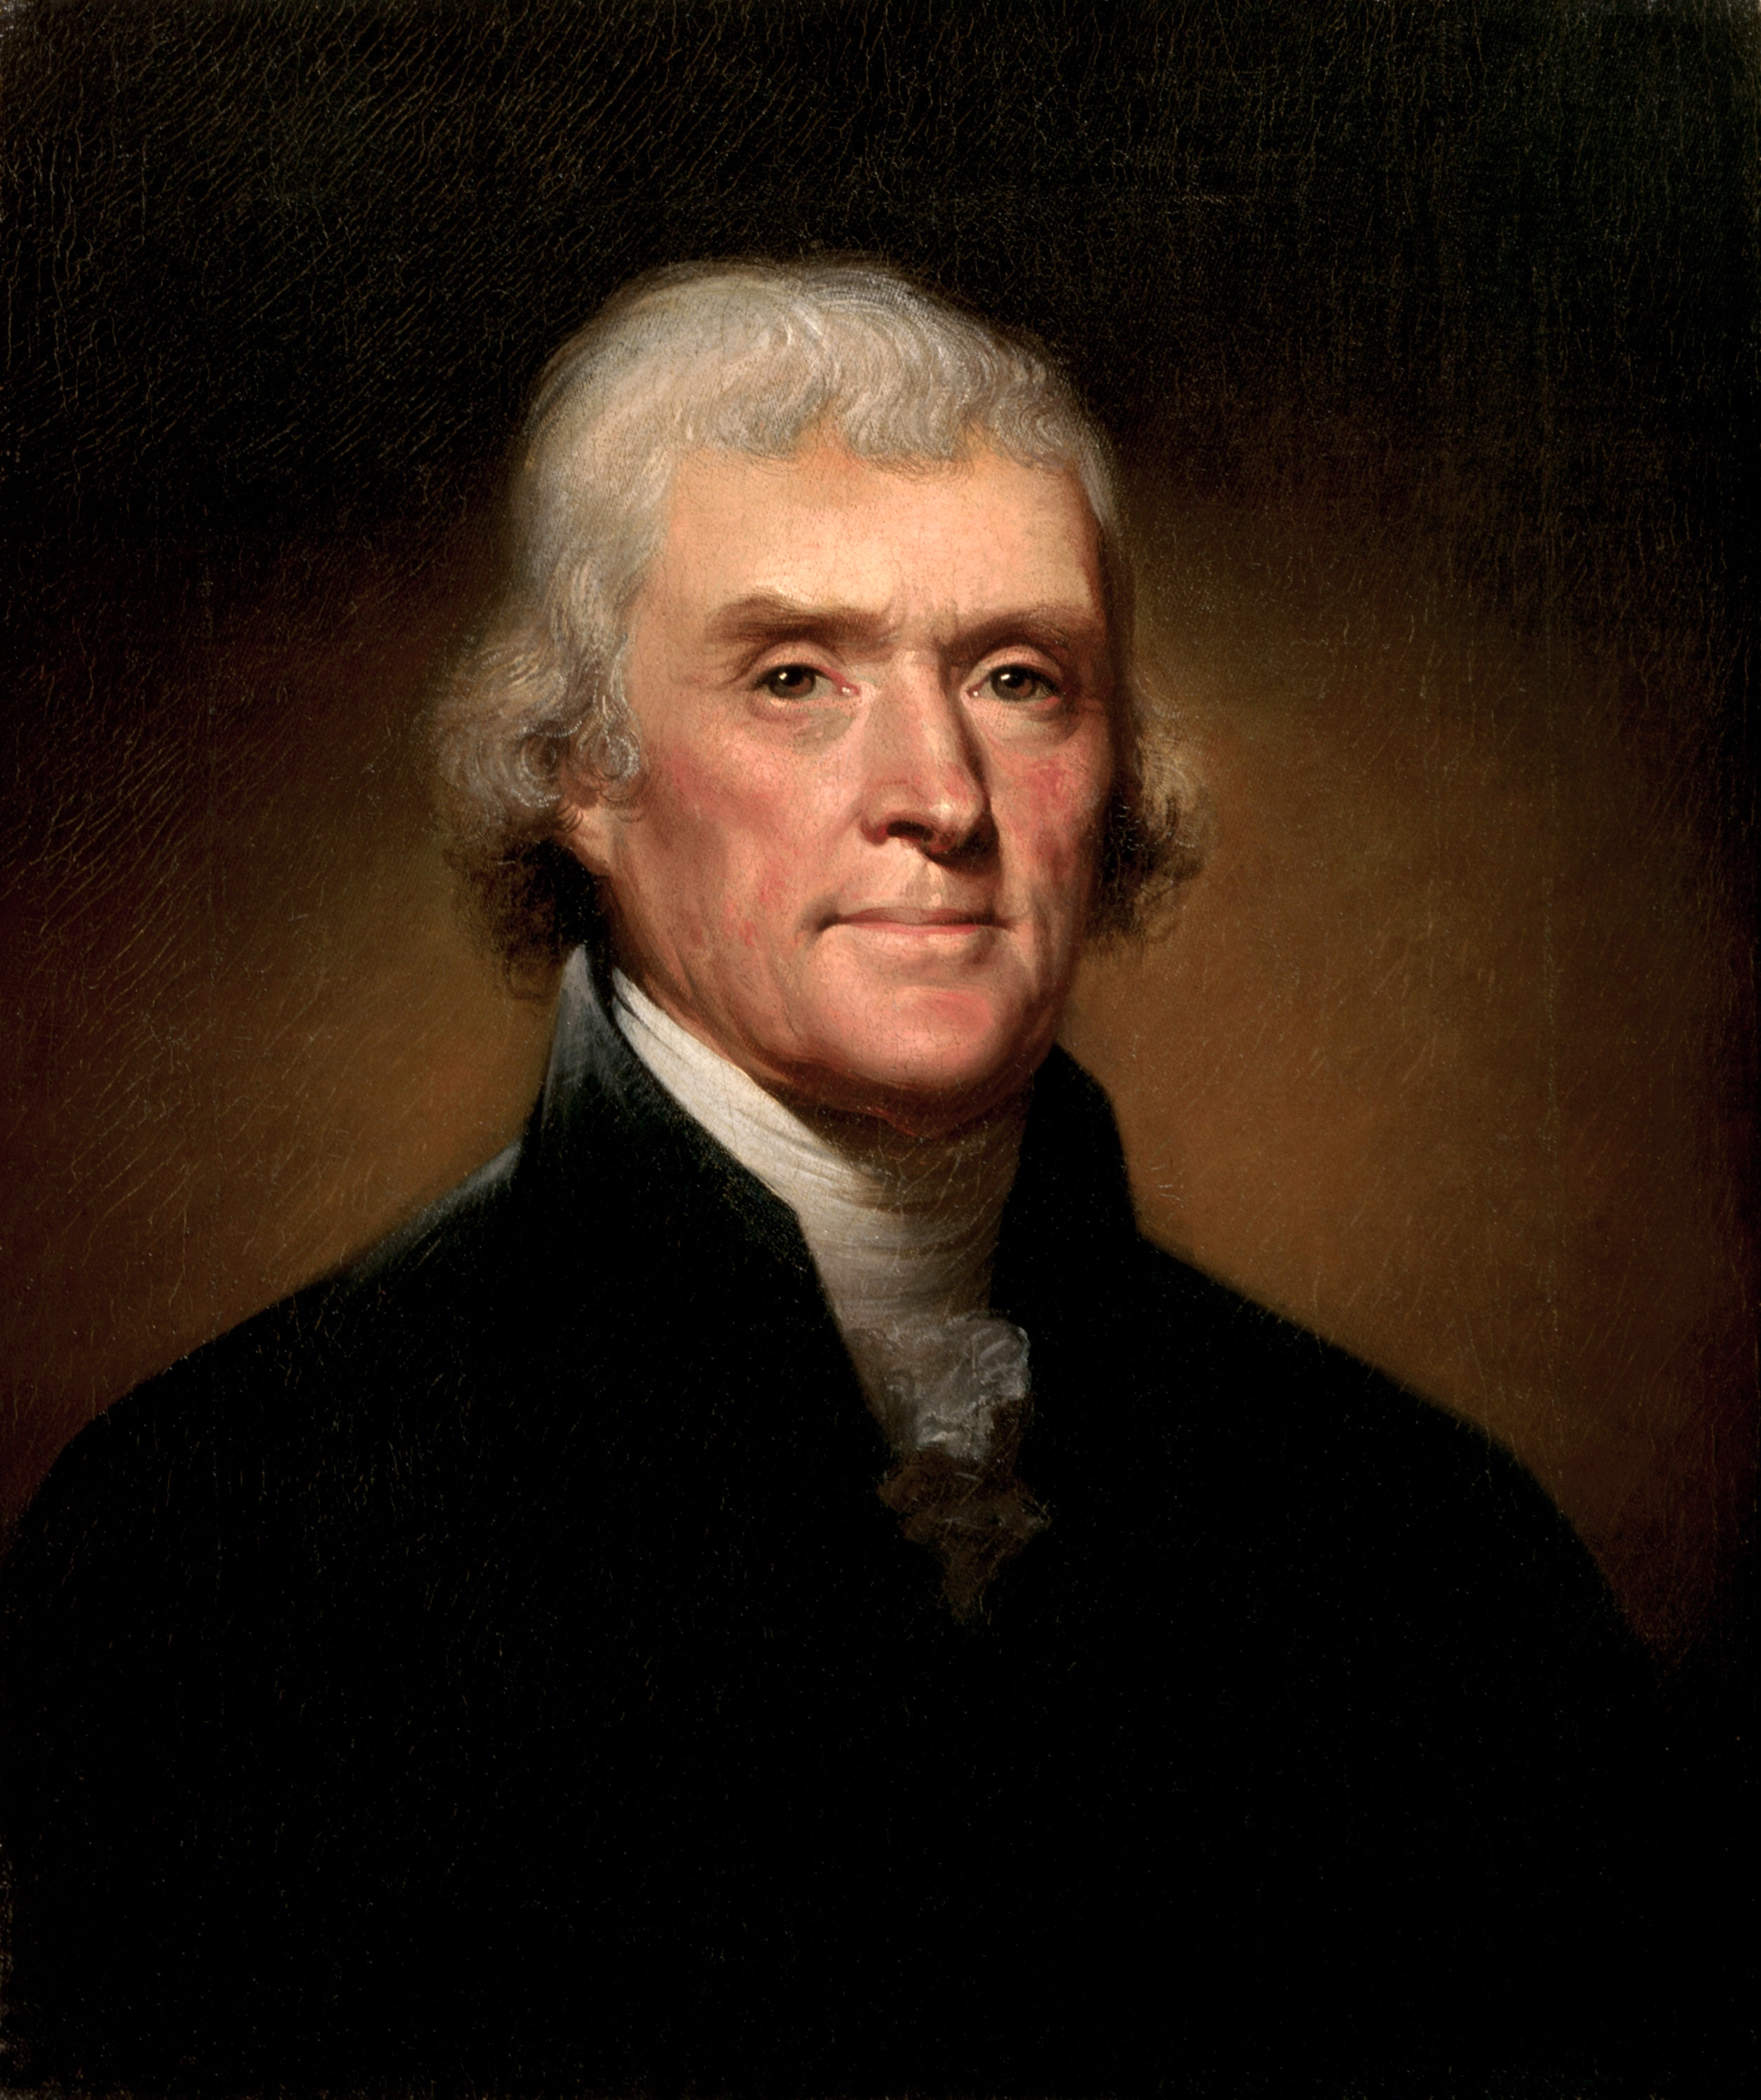 Thomas Jefferson. Image courtesy of Wikipedia.